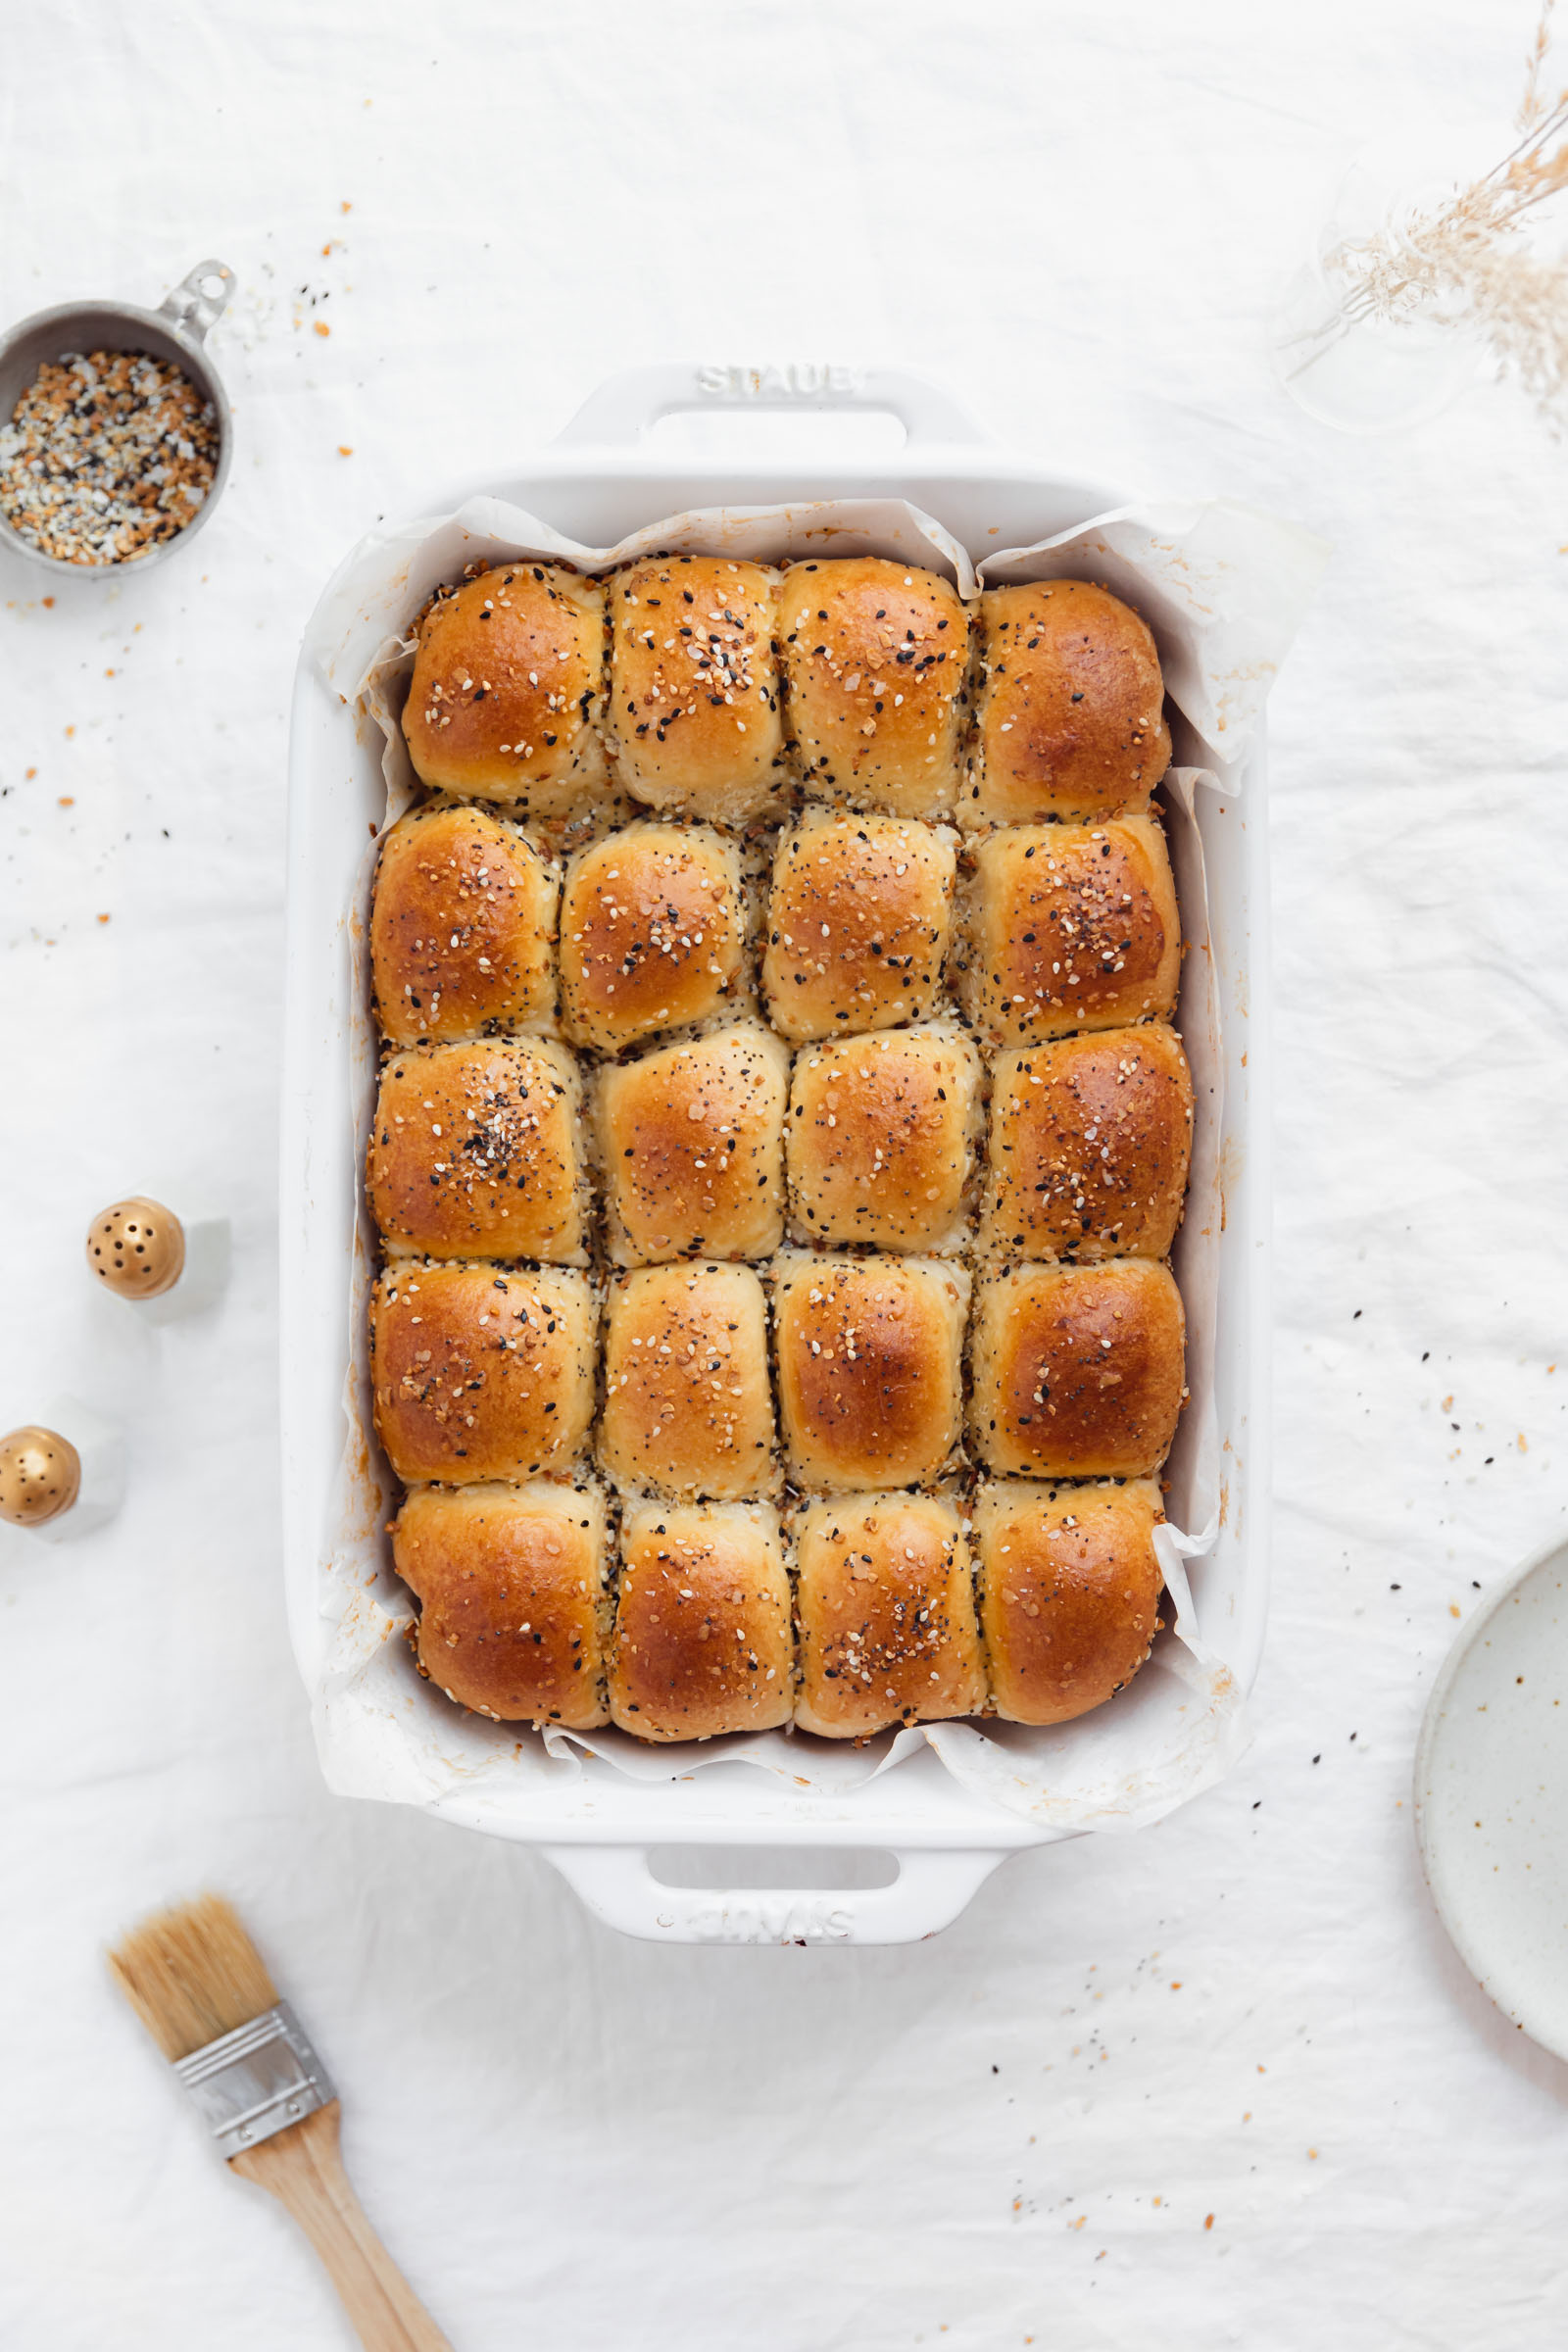 everything parker house rolls in a pan